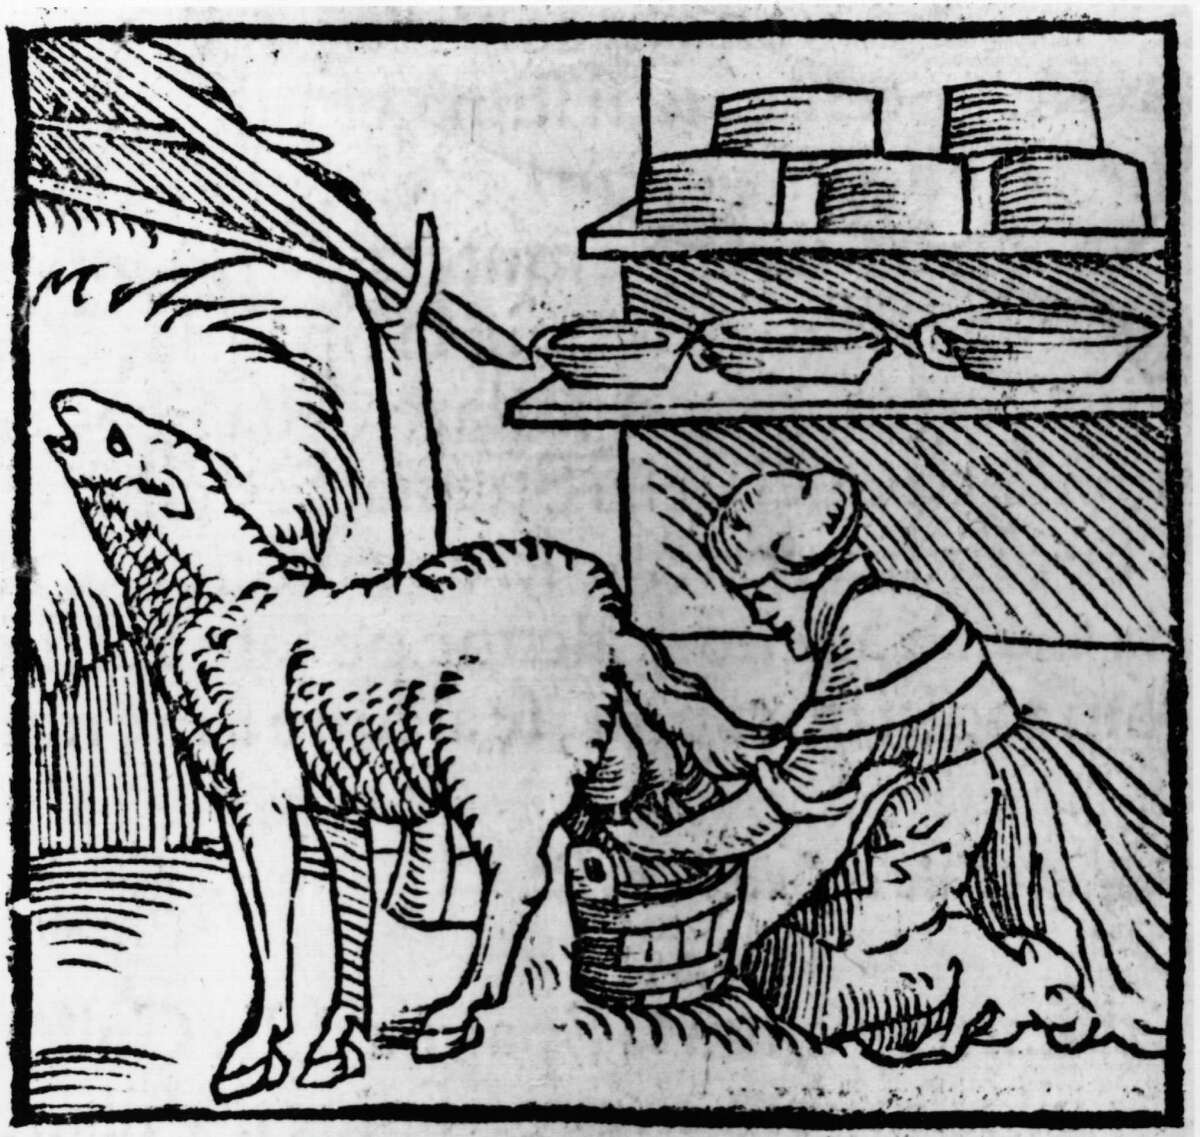 A woman milks a sheep with cheeses stored on nearby shelves in this woodcut from 1549.